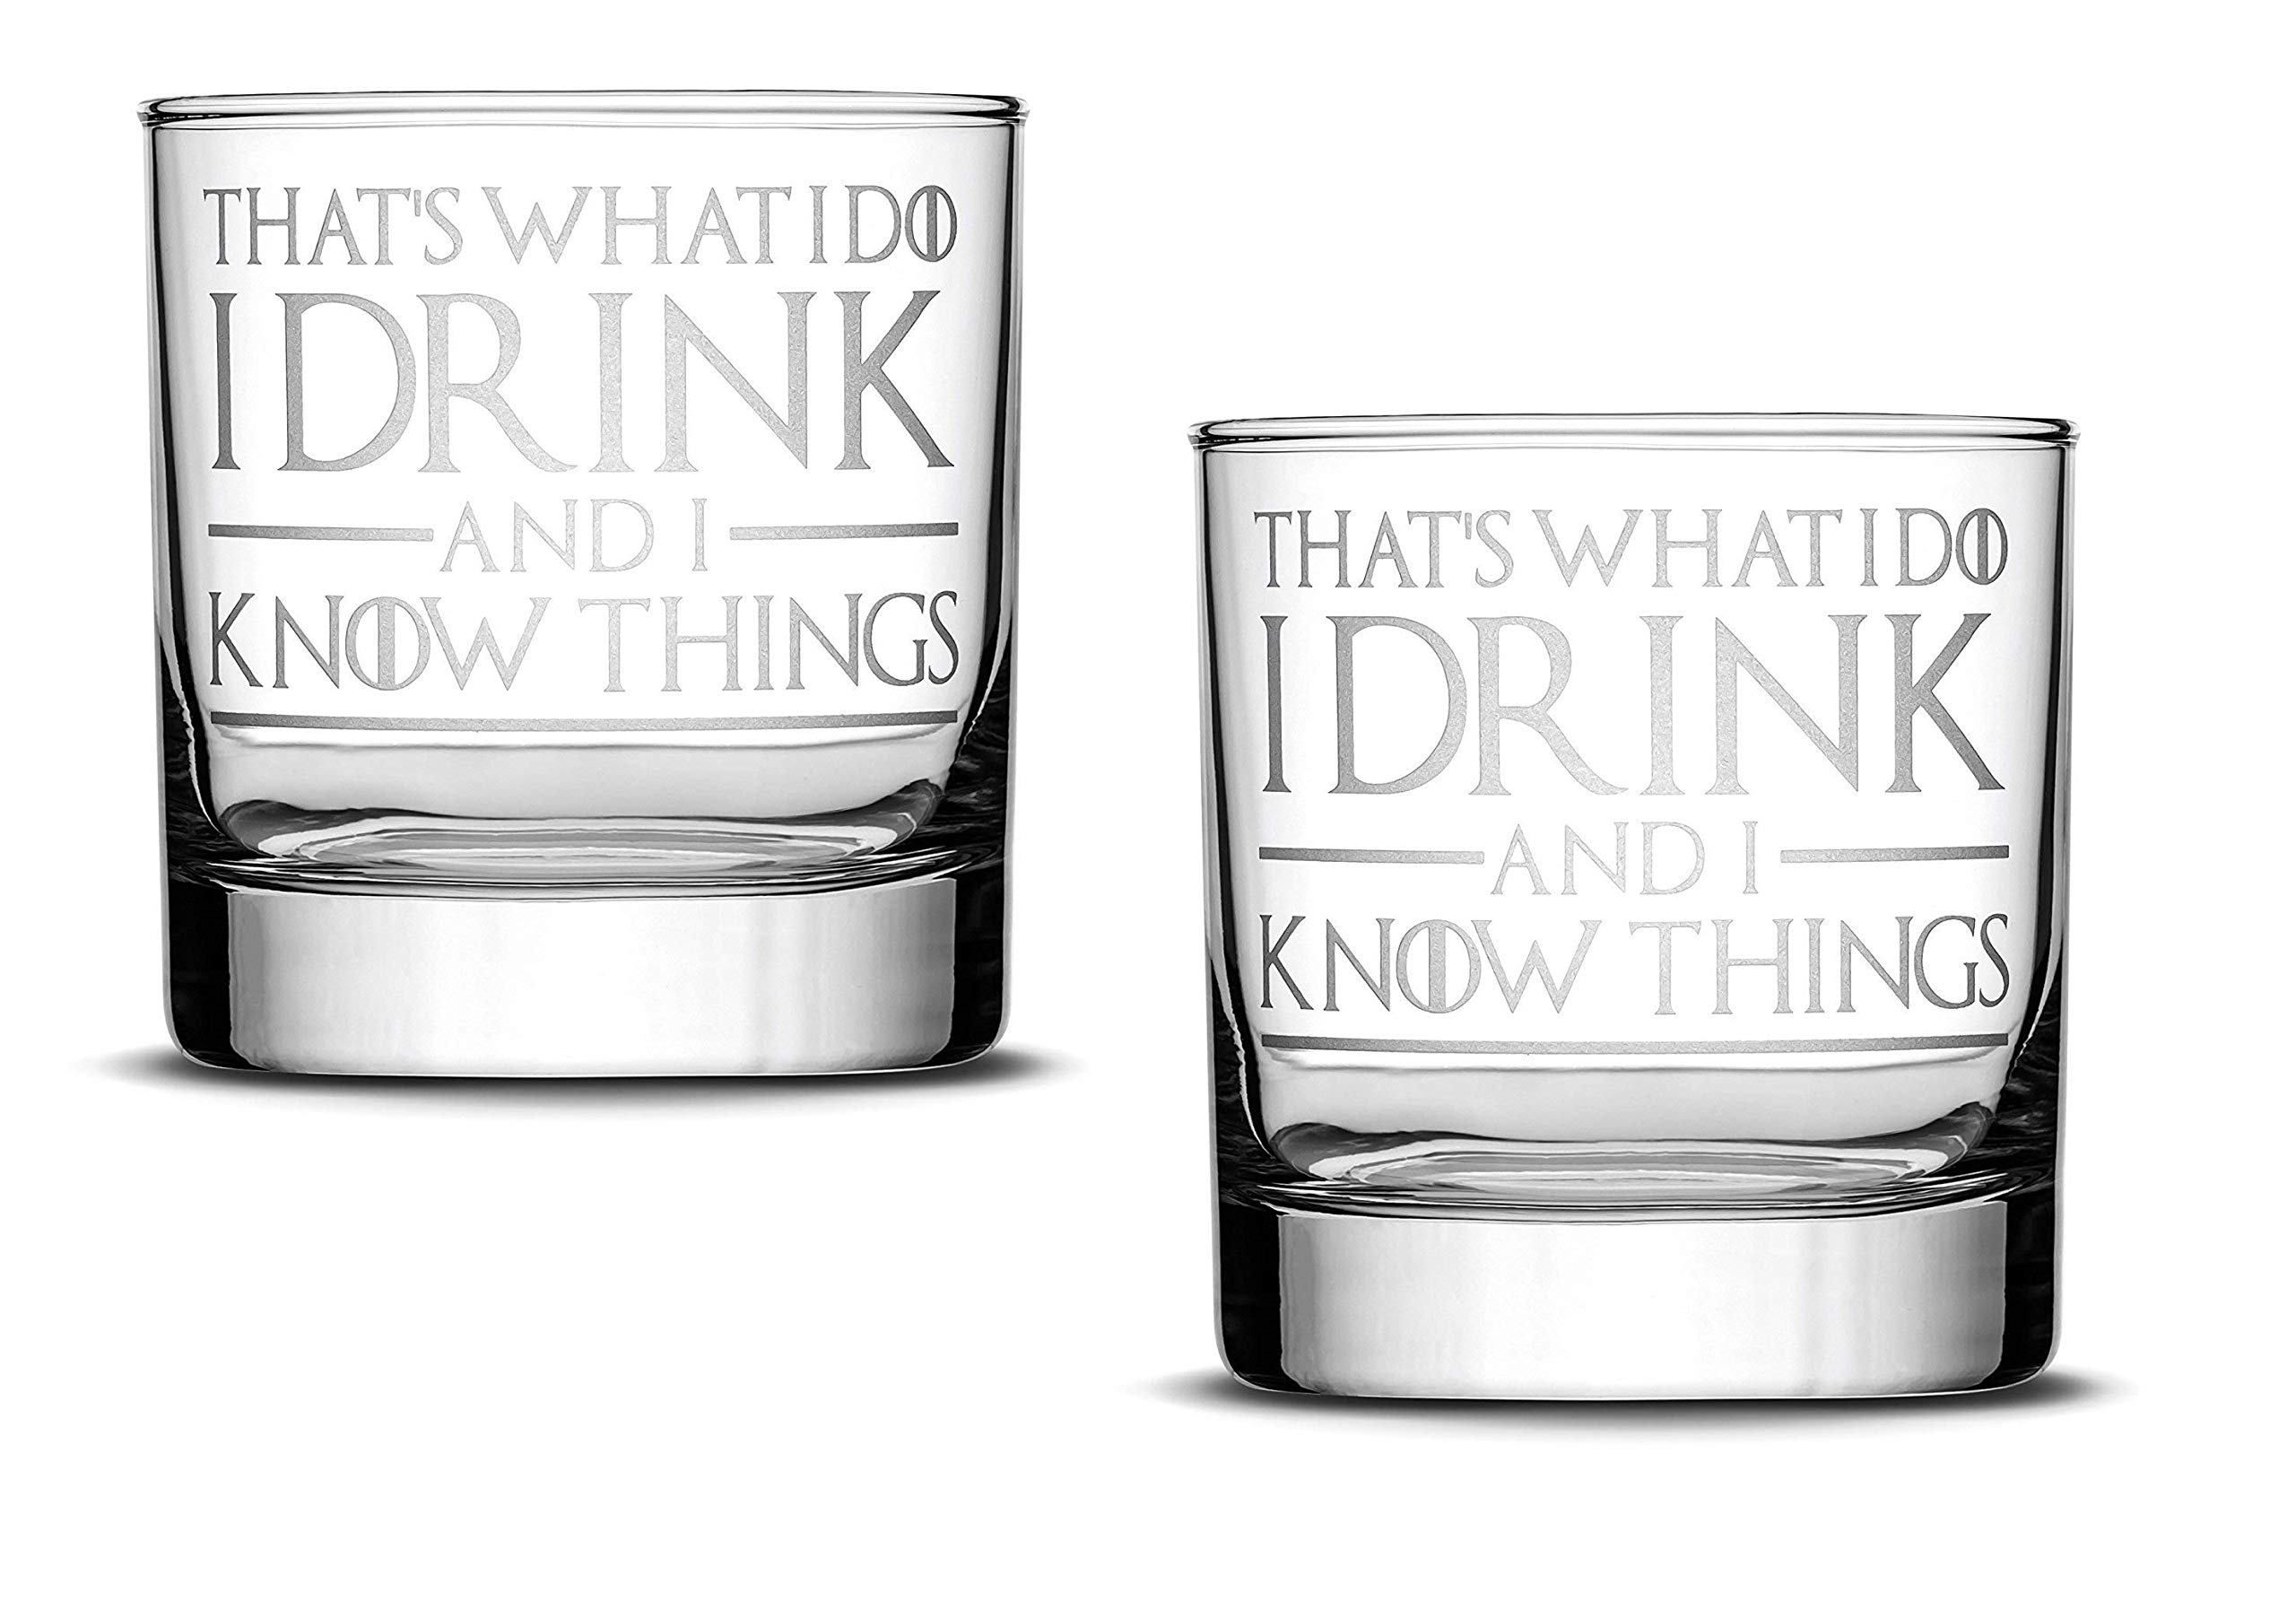 Premium Game of Thrones Whiskey Glass, Thats What I Do I Drink and I Know Things, Hand Etched 14oz Rocks Glass, Made in USA, Highball Gifts (2)